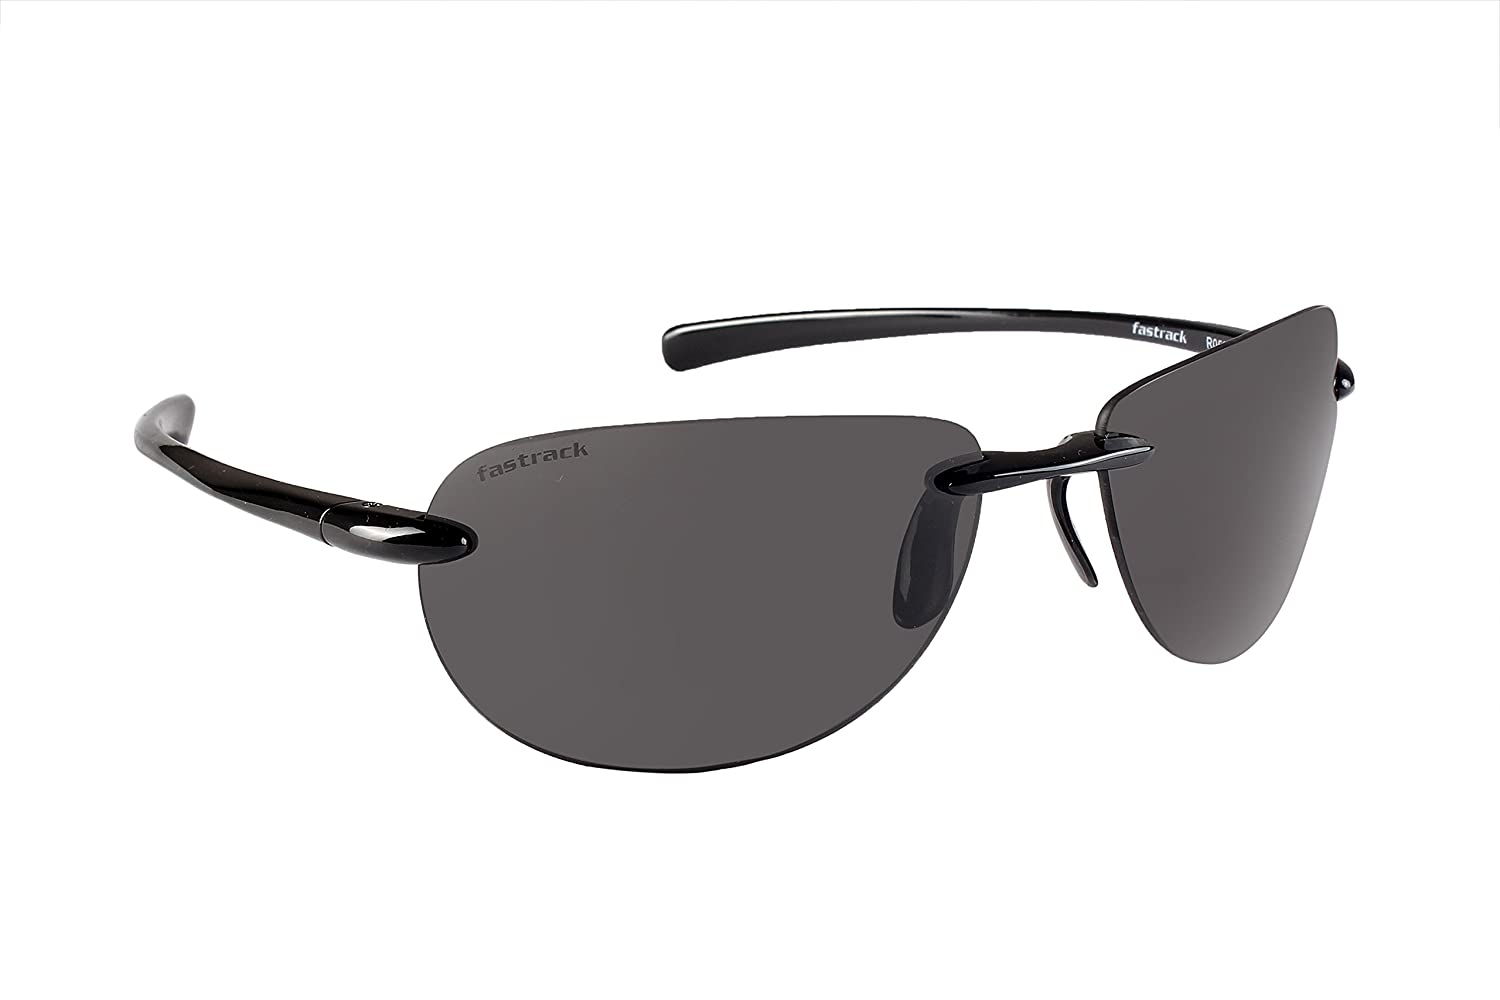 5b792f2ce37 Fastrack-R052BK1 Black Oval Sunglasses for Men   Women  Amazon.in  Clothing    Accessories